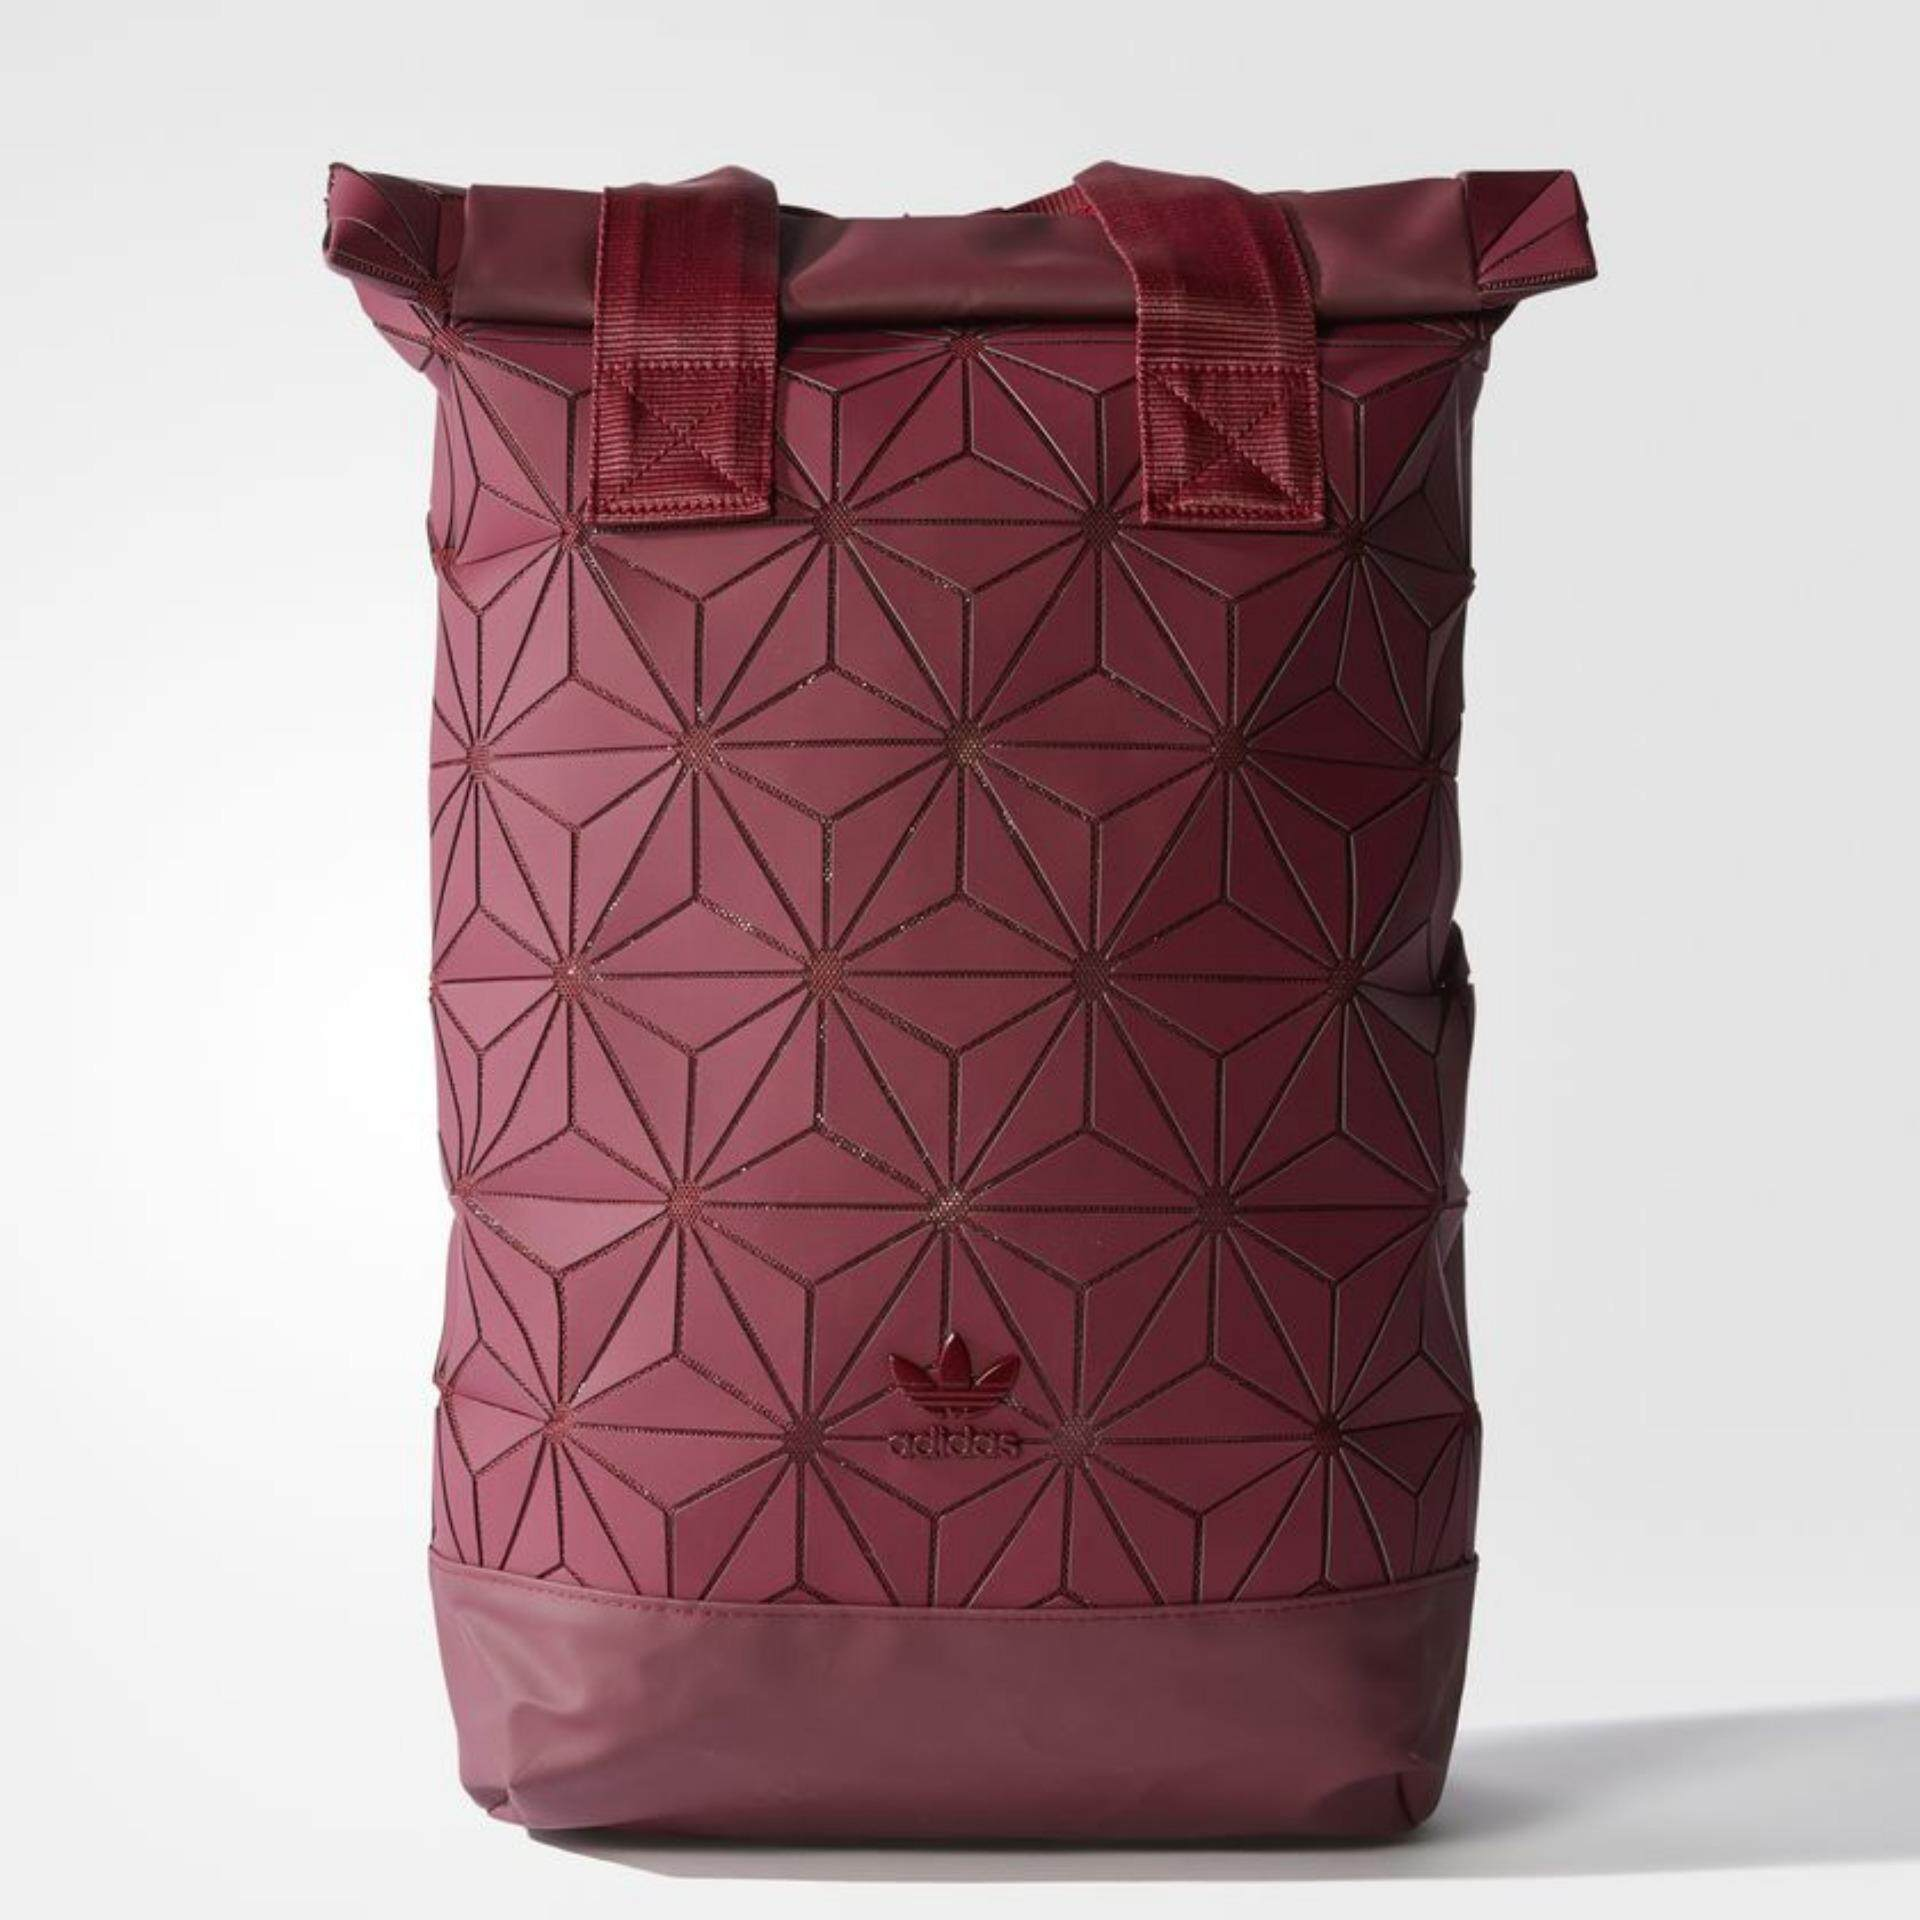 Adidas Originals 3D Roll Top Backpack Collegiate Burgundy DH0101 geometric panels on mesh